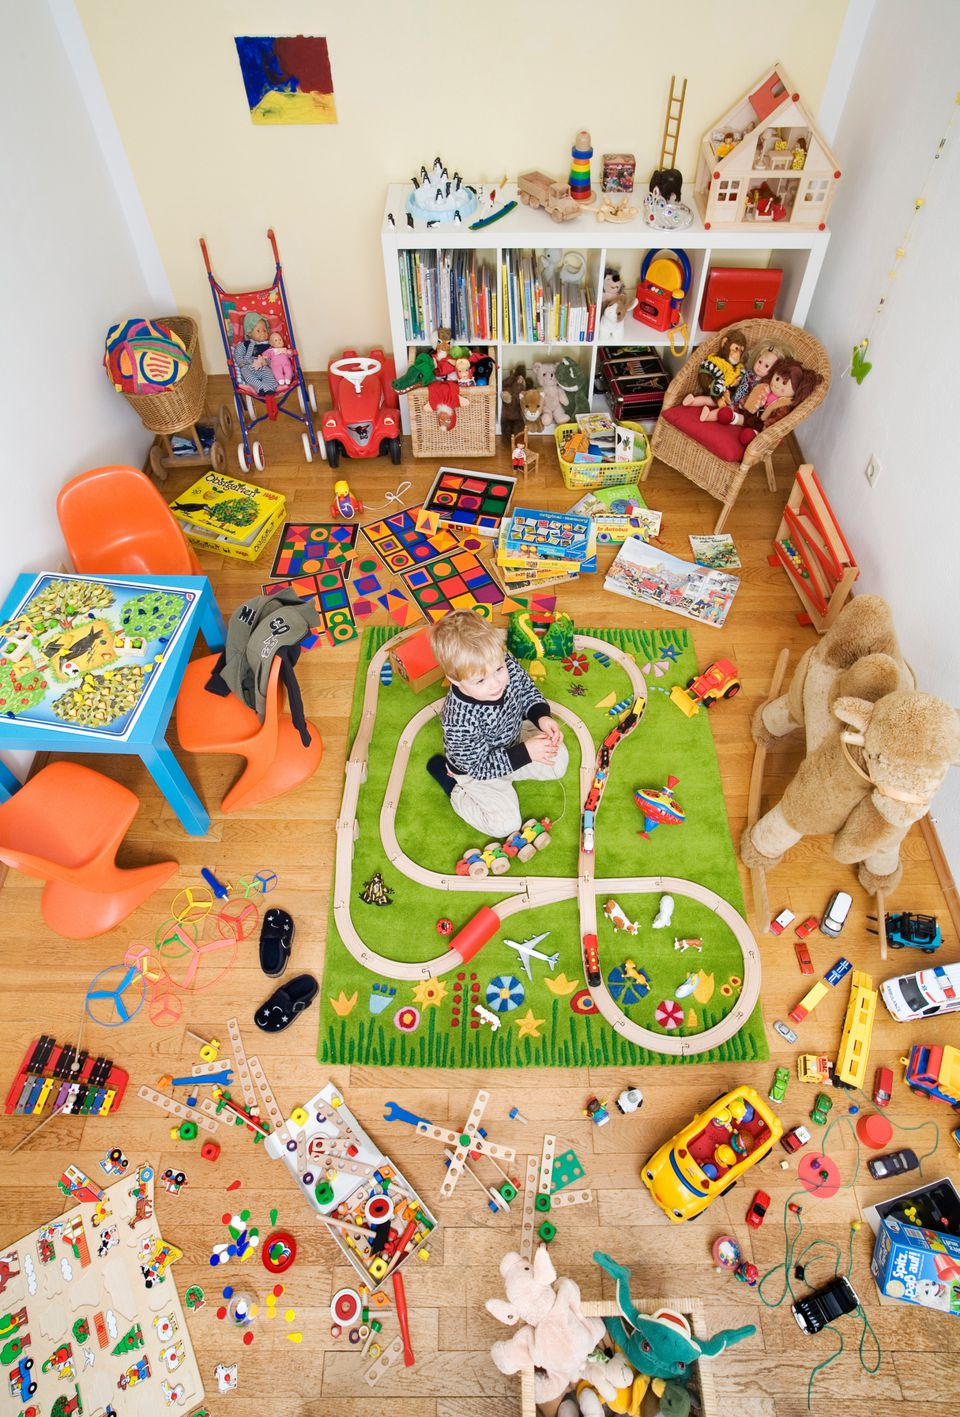 Get control over chaotic clutter